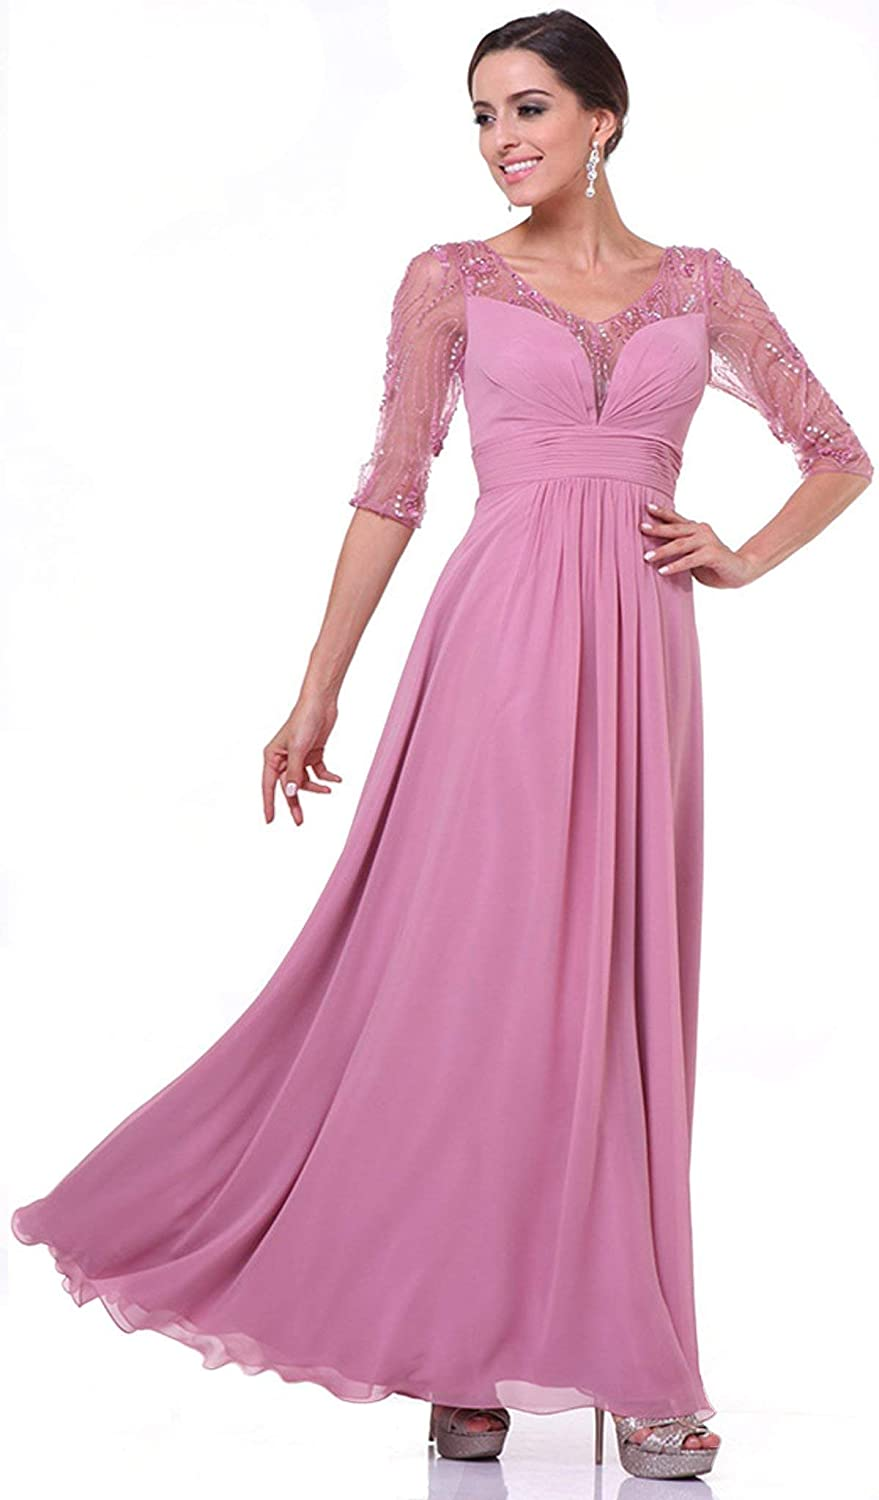 Cinderella Divine  967 Sheer Quarter Length Sleeve Ruched Aline Dress